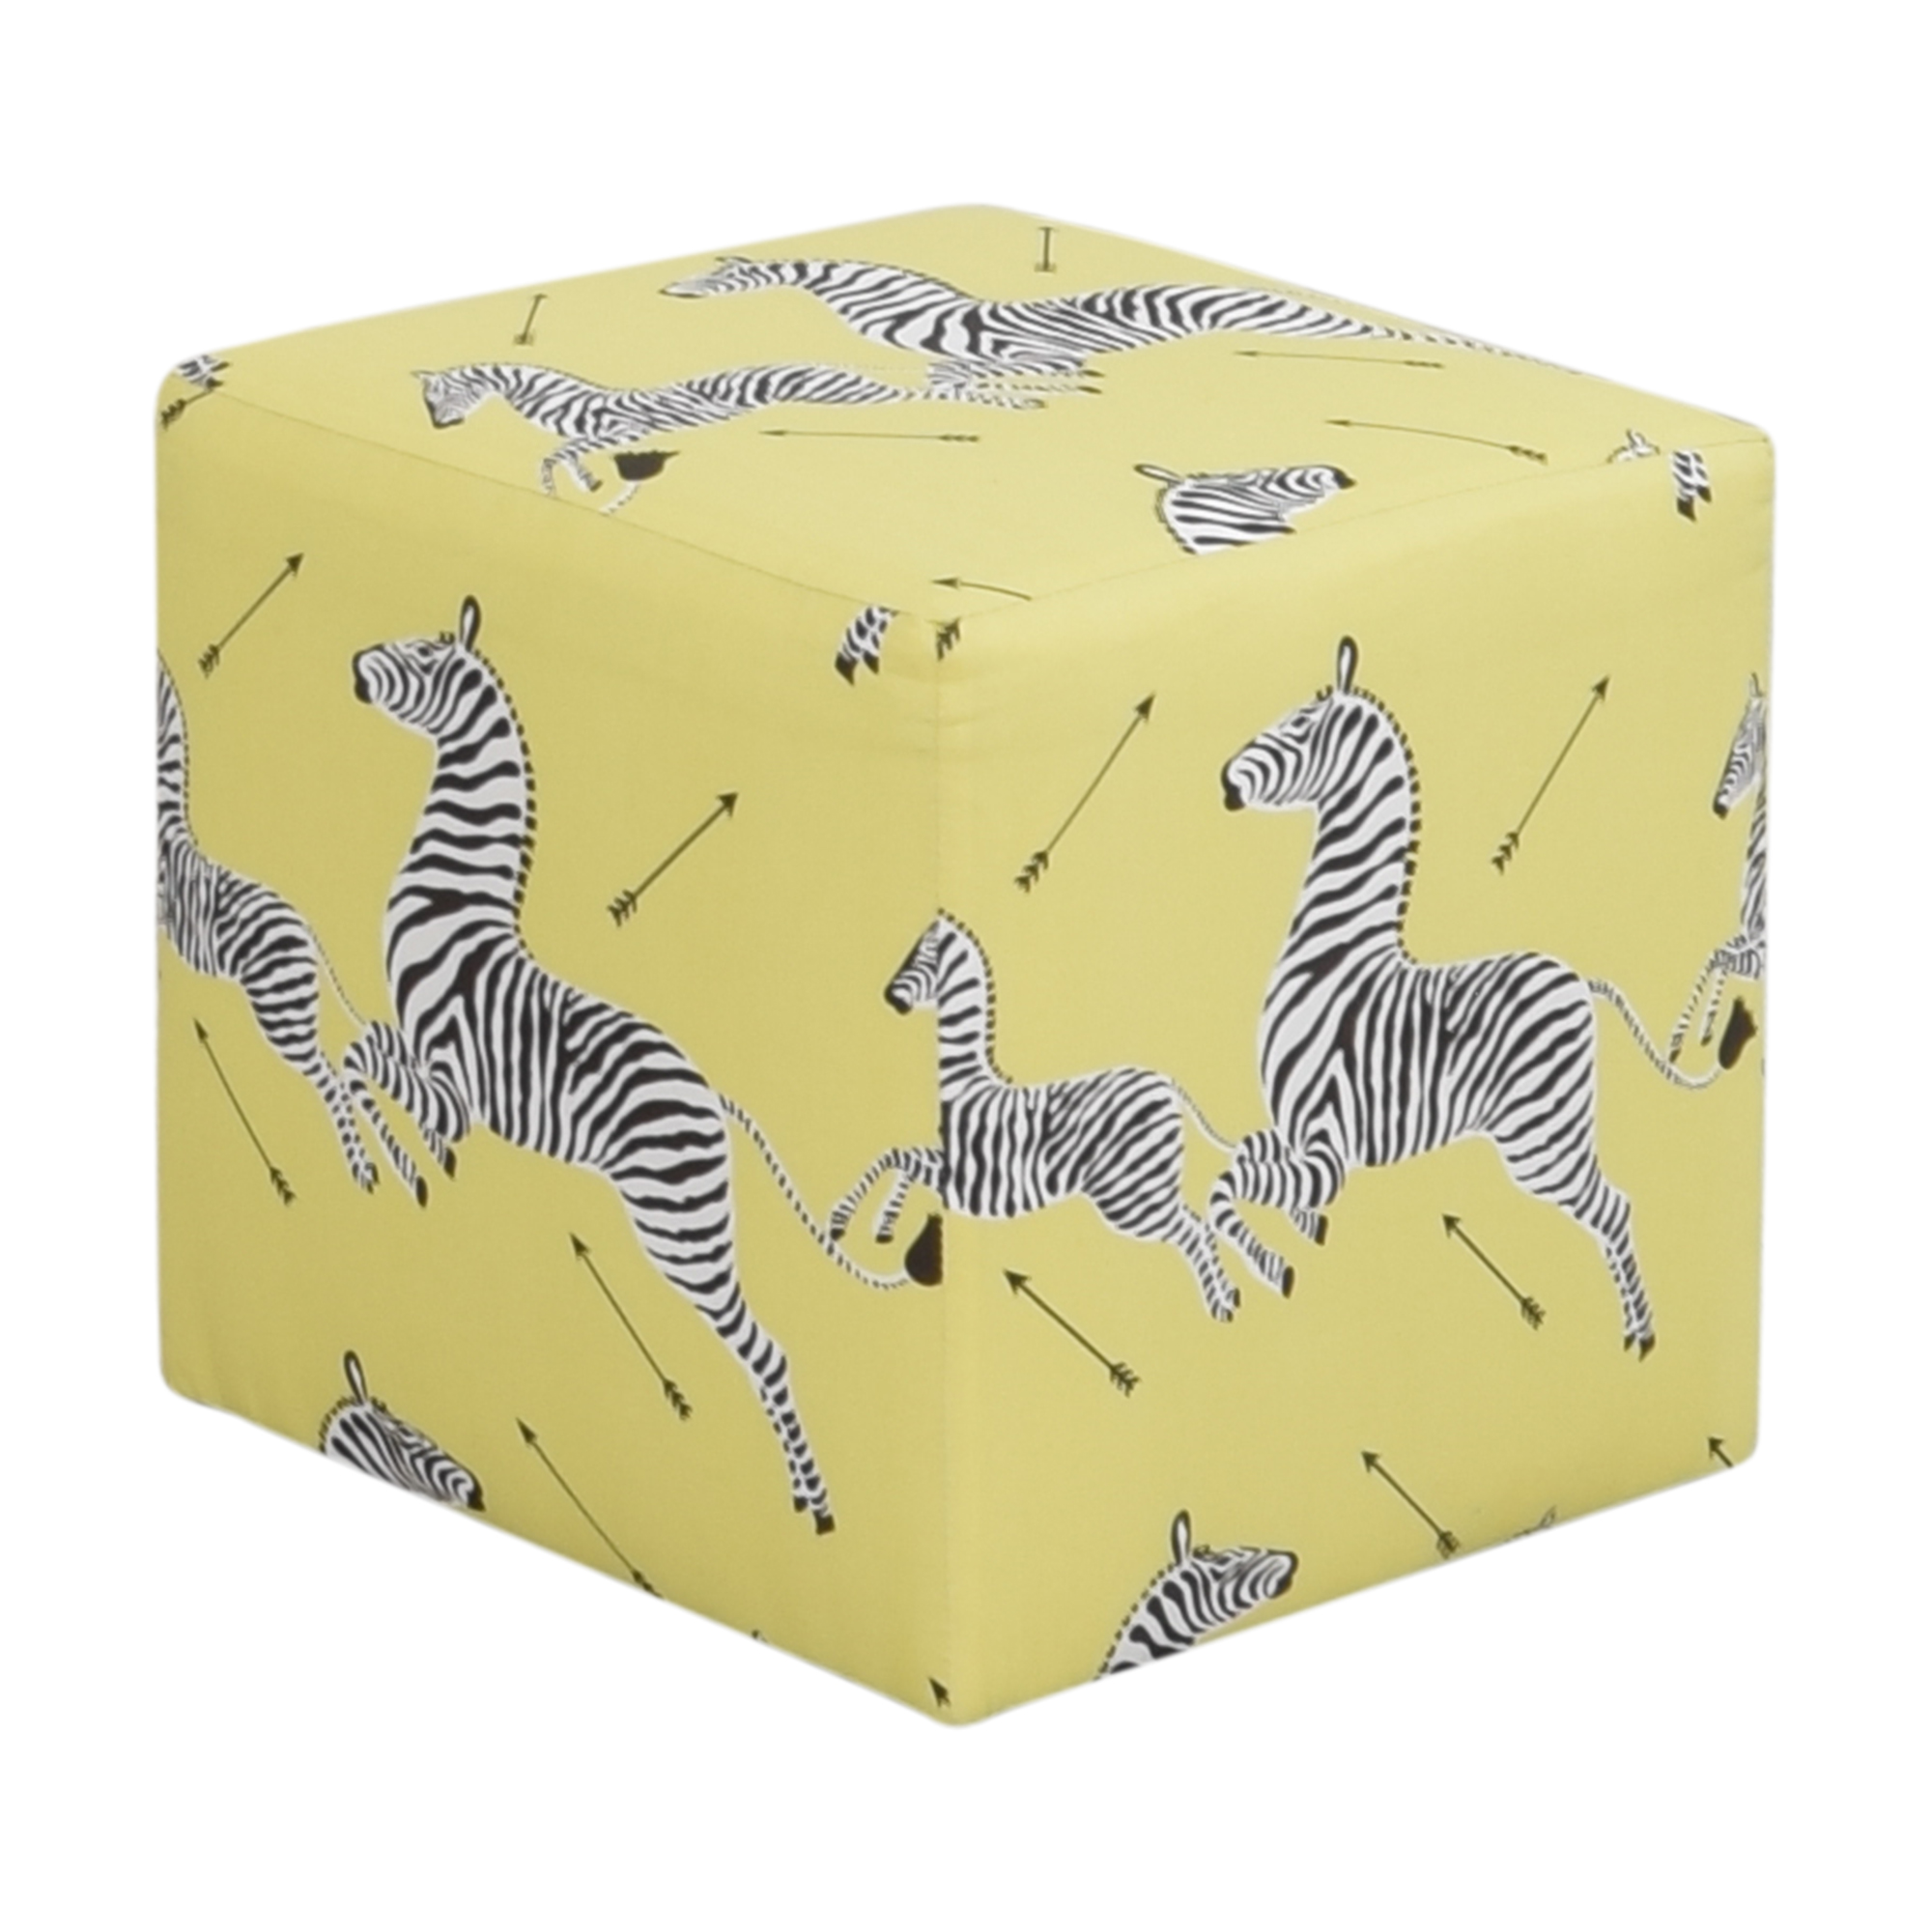 The Inside The Inside Cube Ottoman used